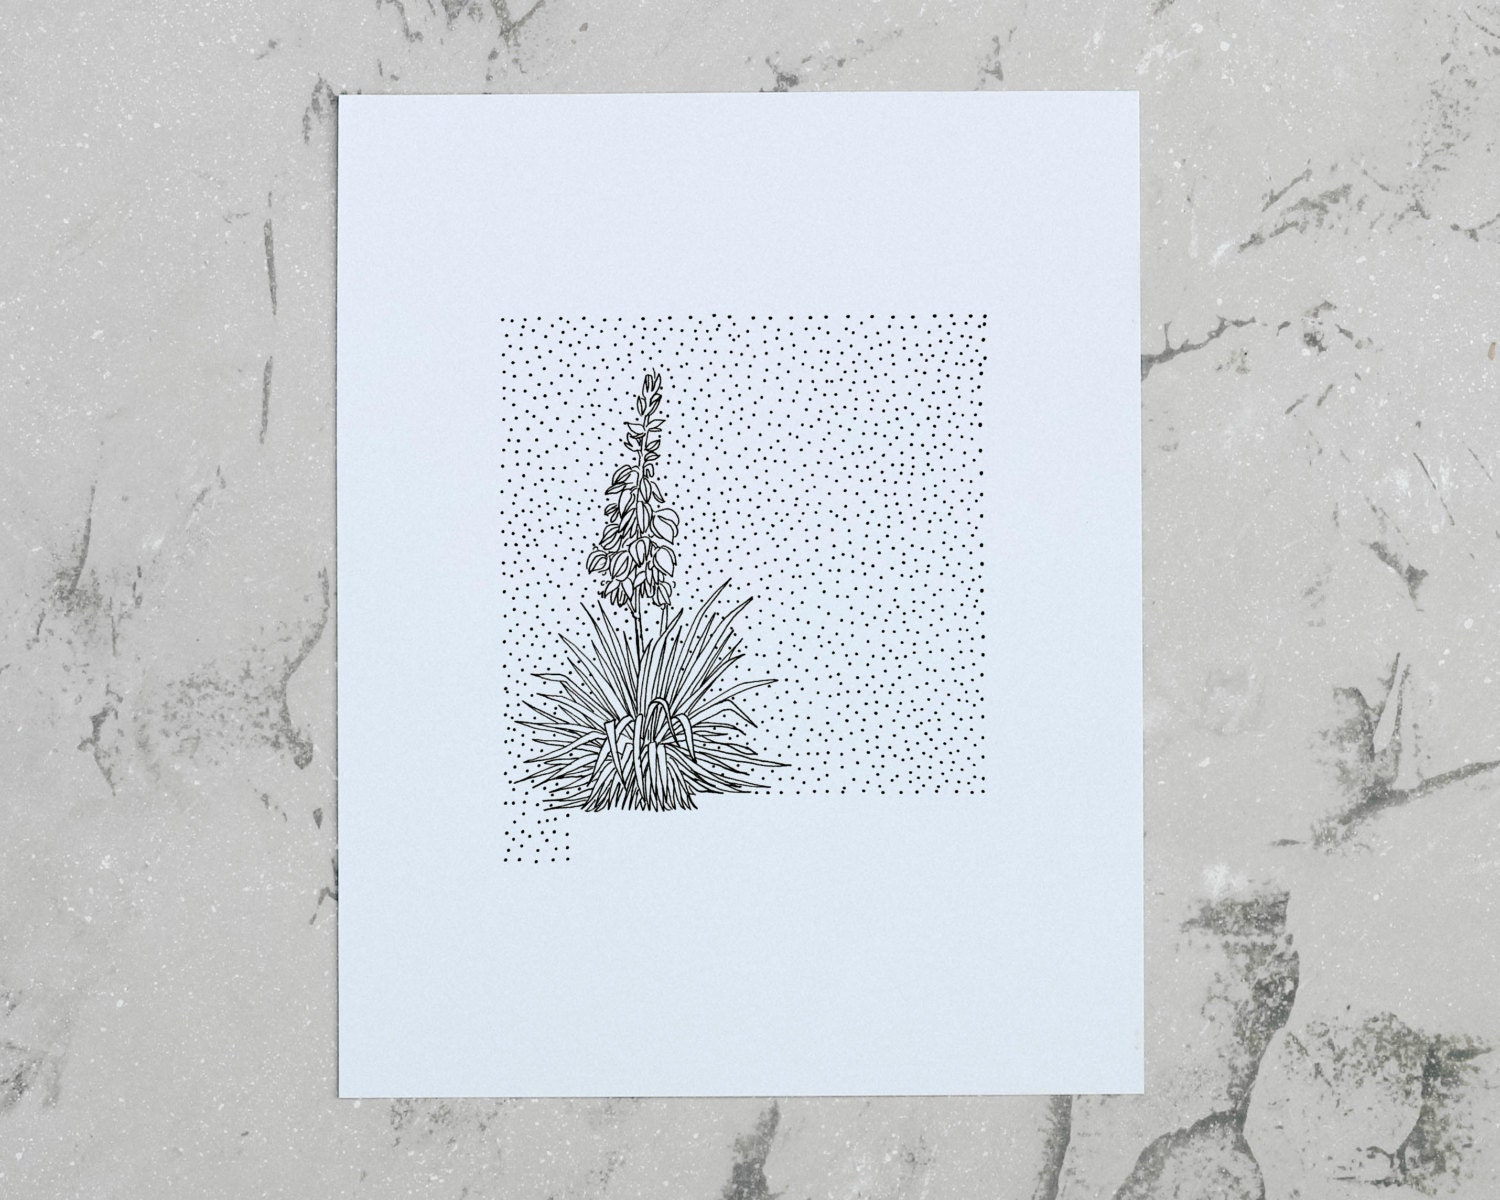 New Mexico Yucca State Flower Drawing Giclee Print by annatovar